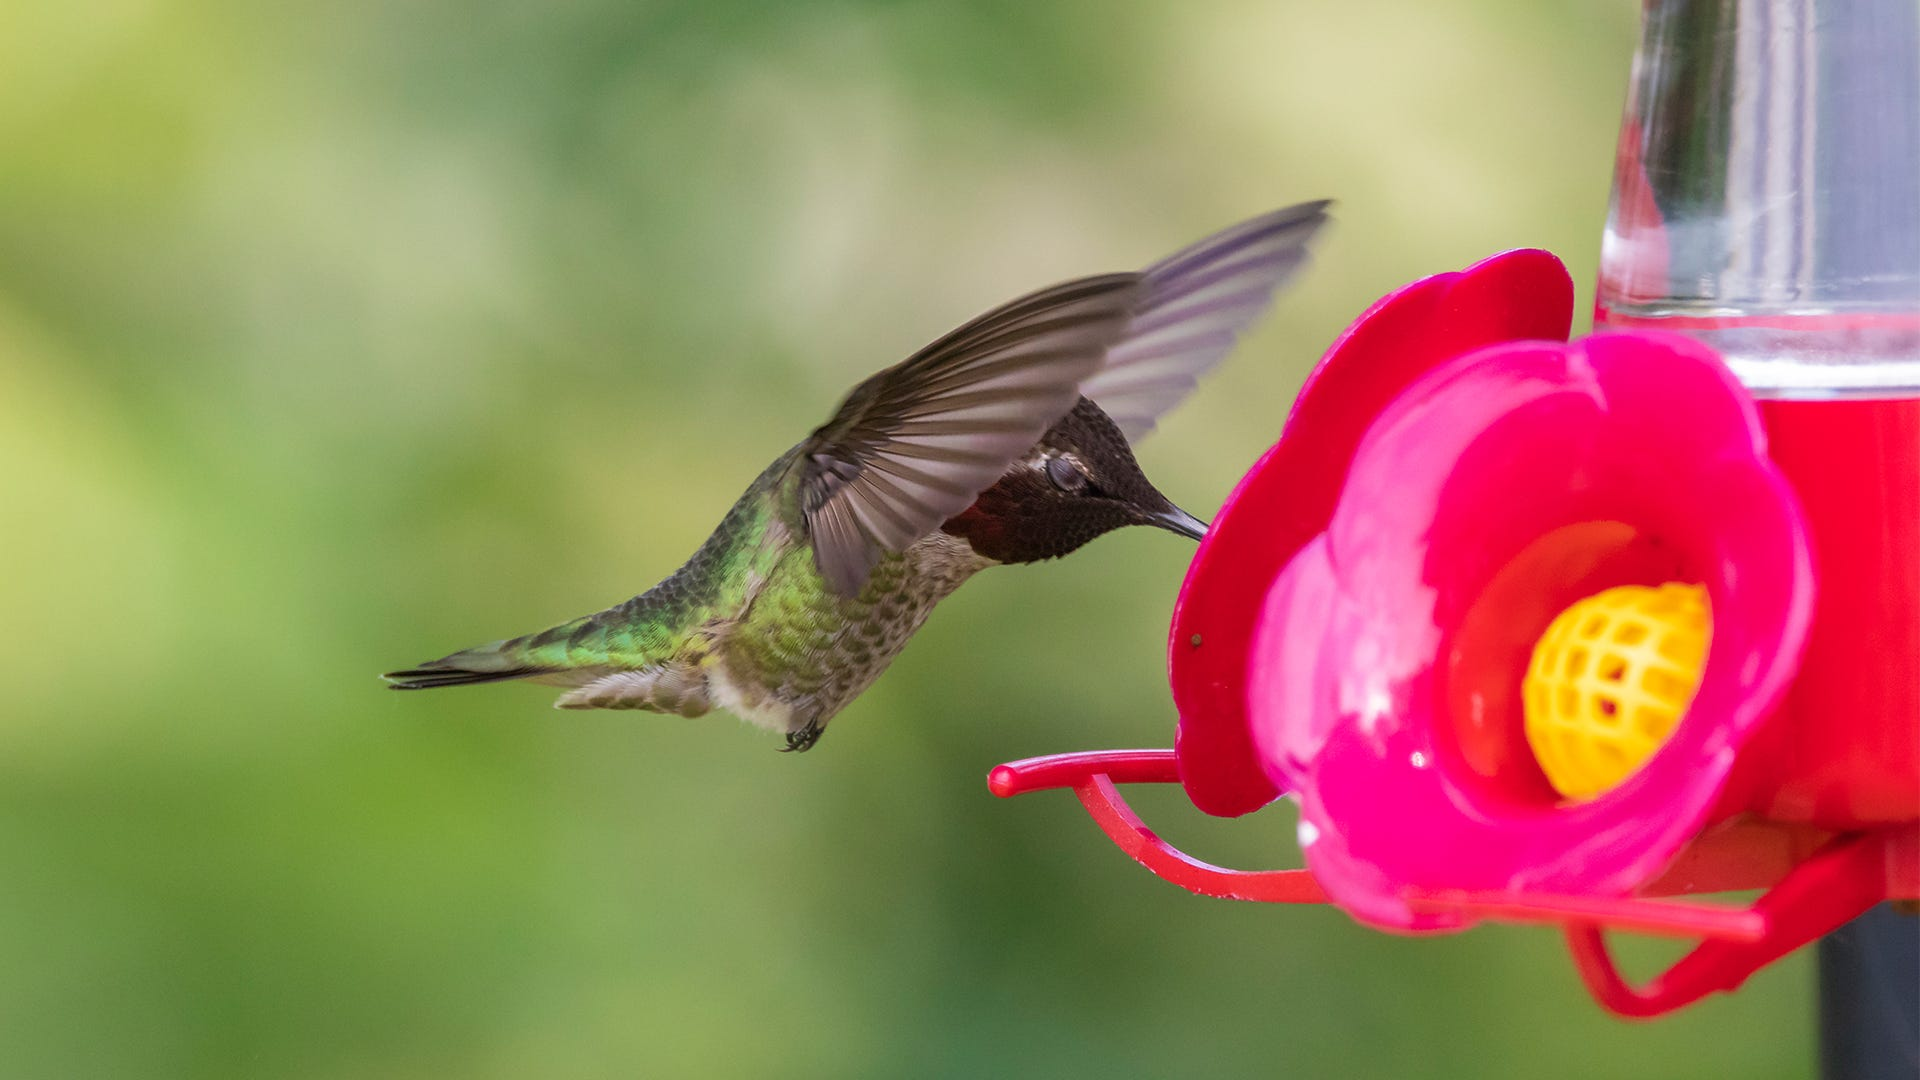 Hummingbird Safety: 5 Easy Ways to Protect Your Hummingbirds